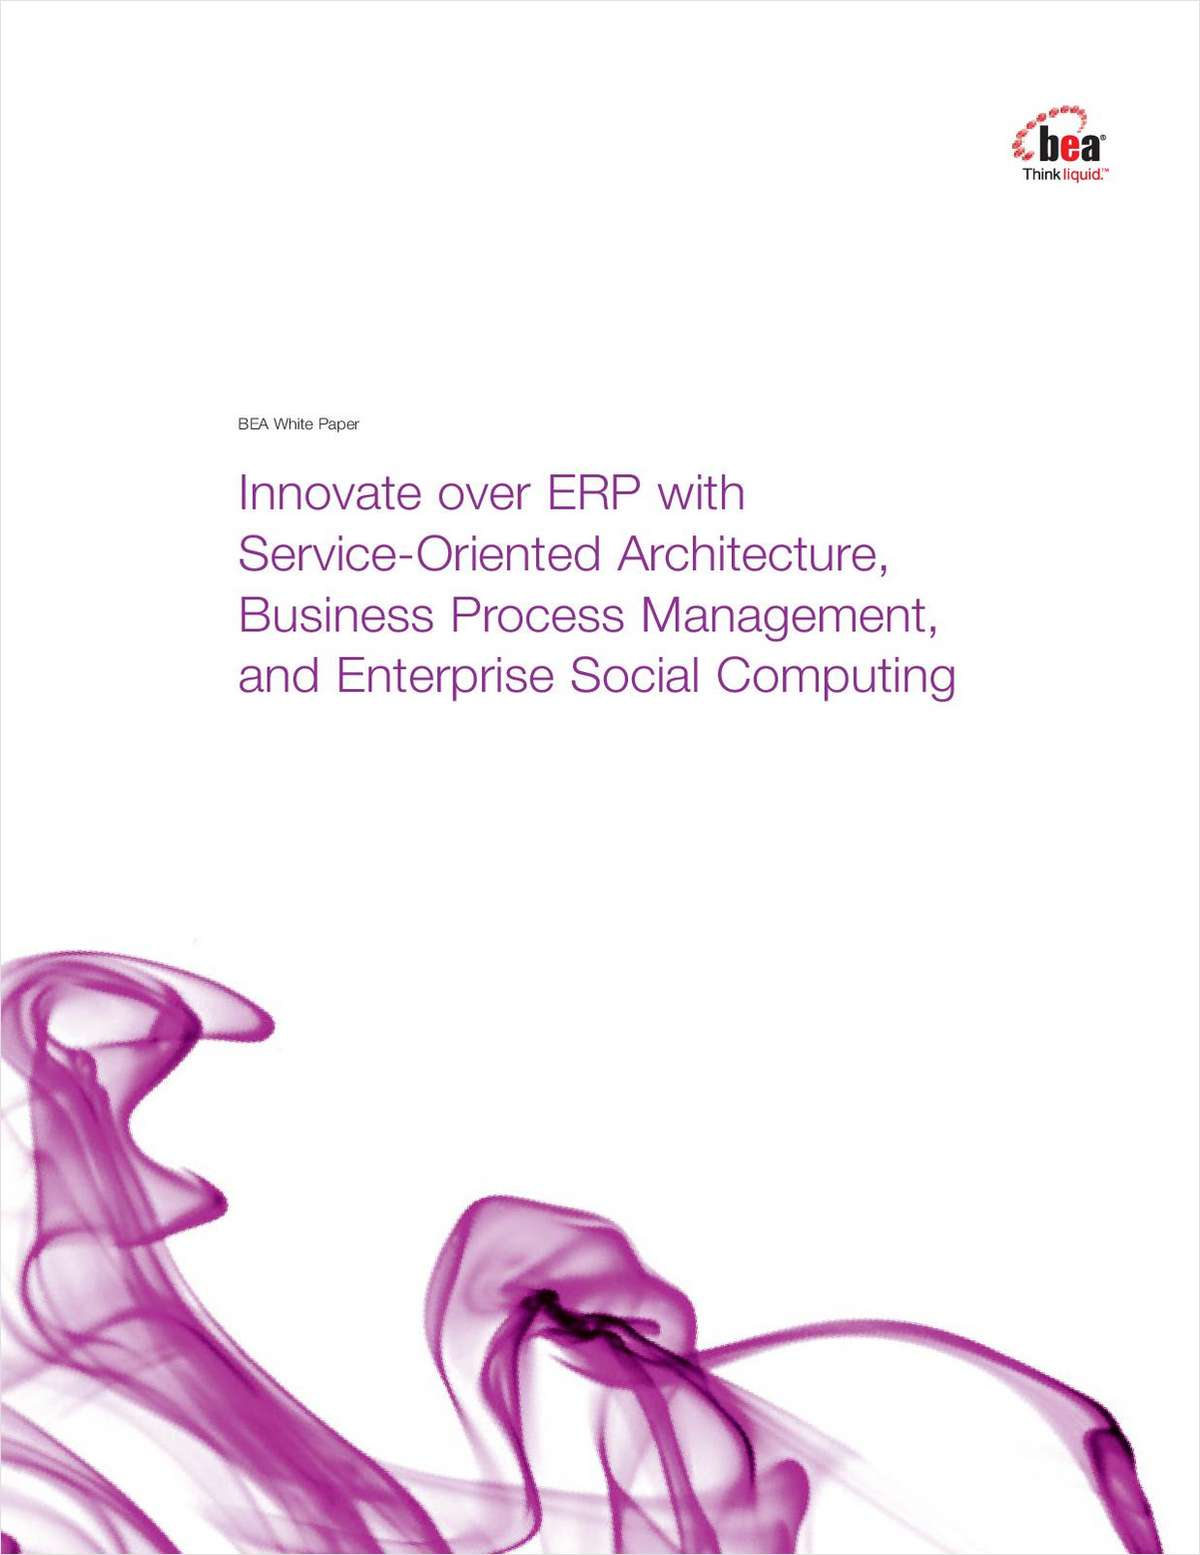 Innovate Over ERP with Service-Oriented Architecture, Business Process Management, and Enterprise Social Computing